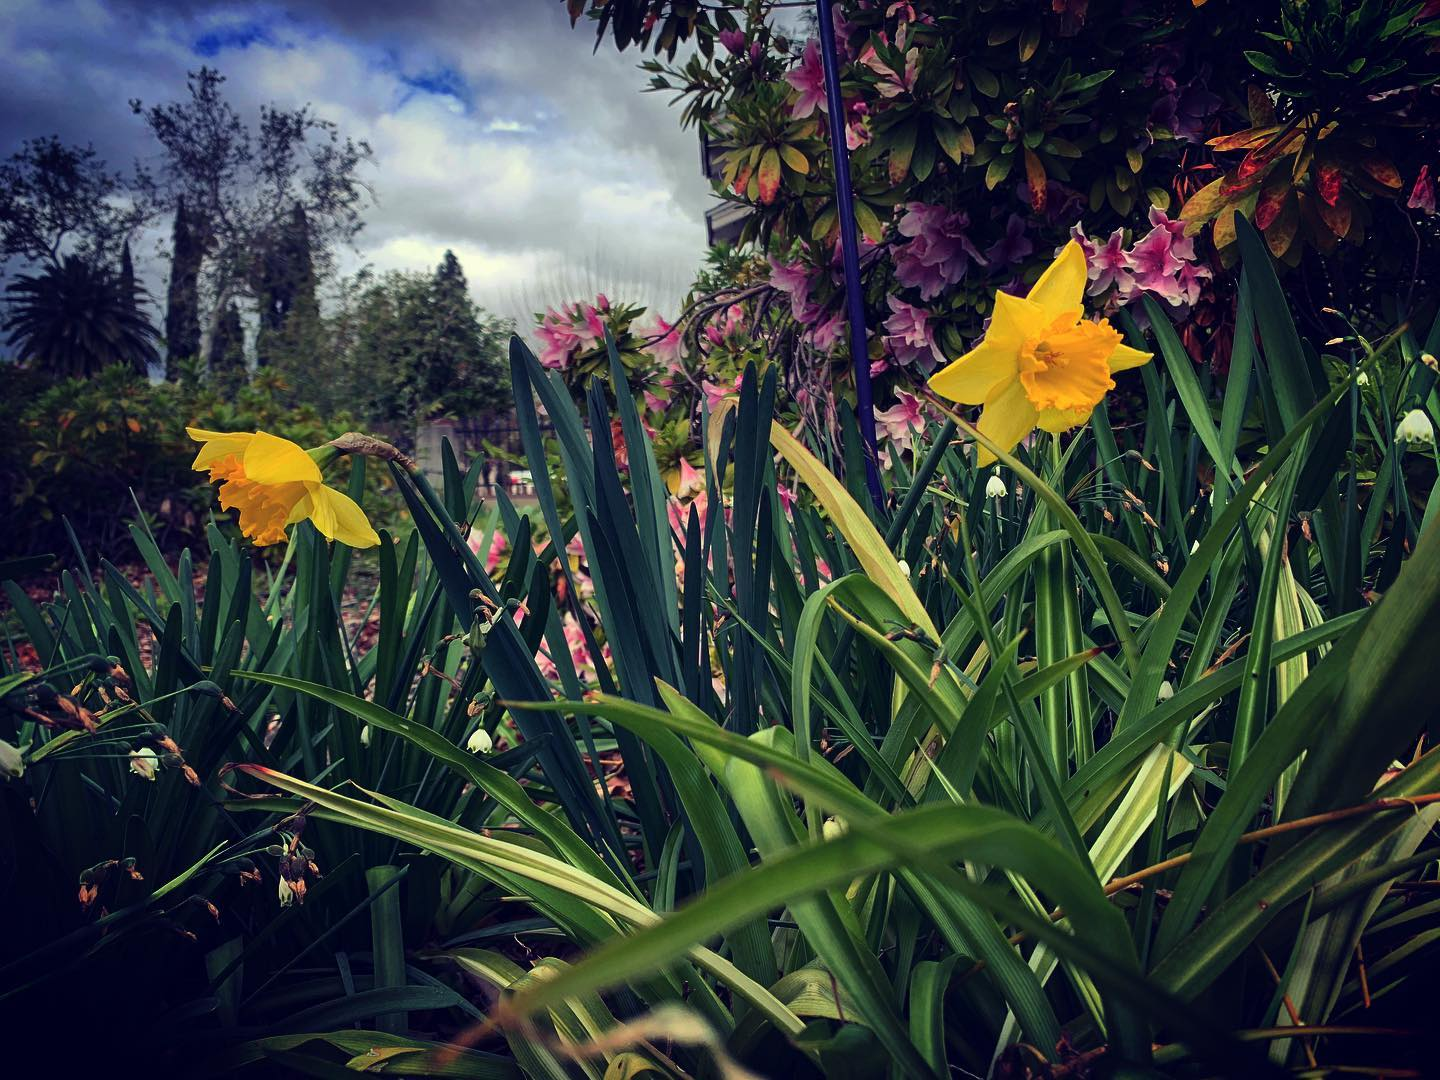 Daffodils, Snowflakes, and Azaleas in the Garden today via Instagram